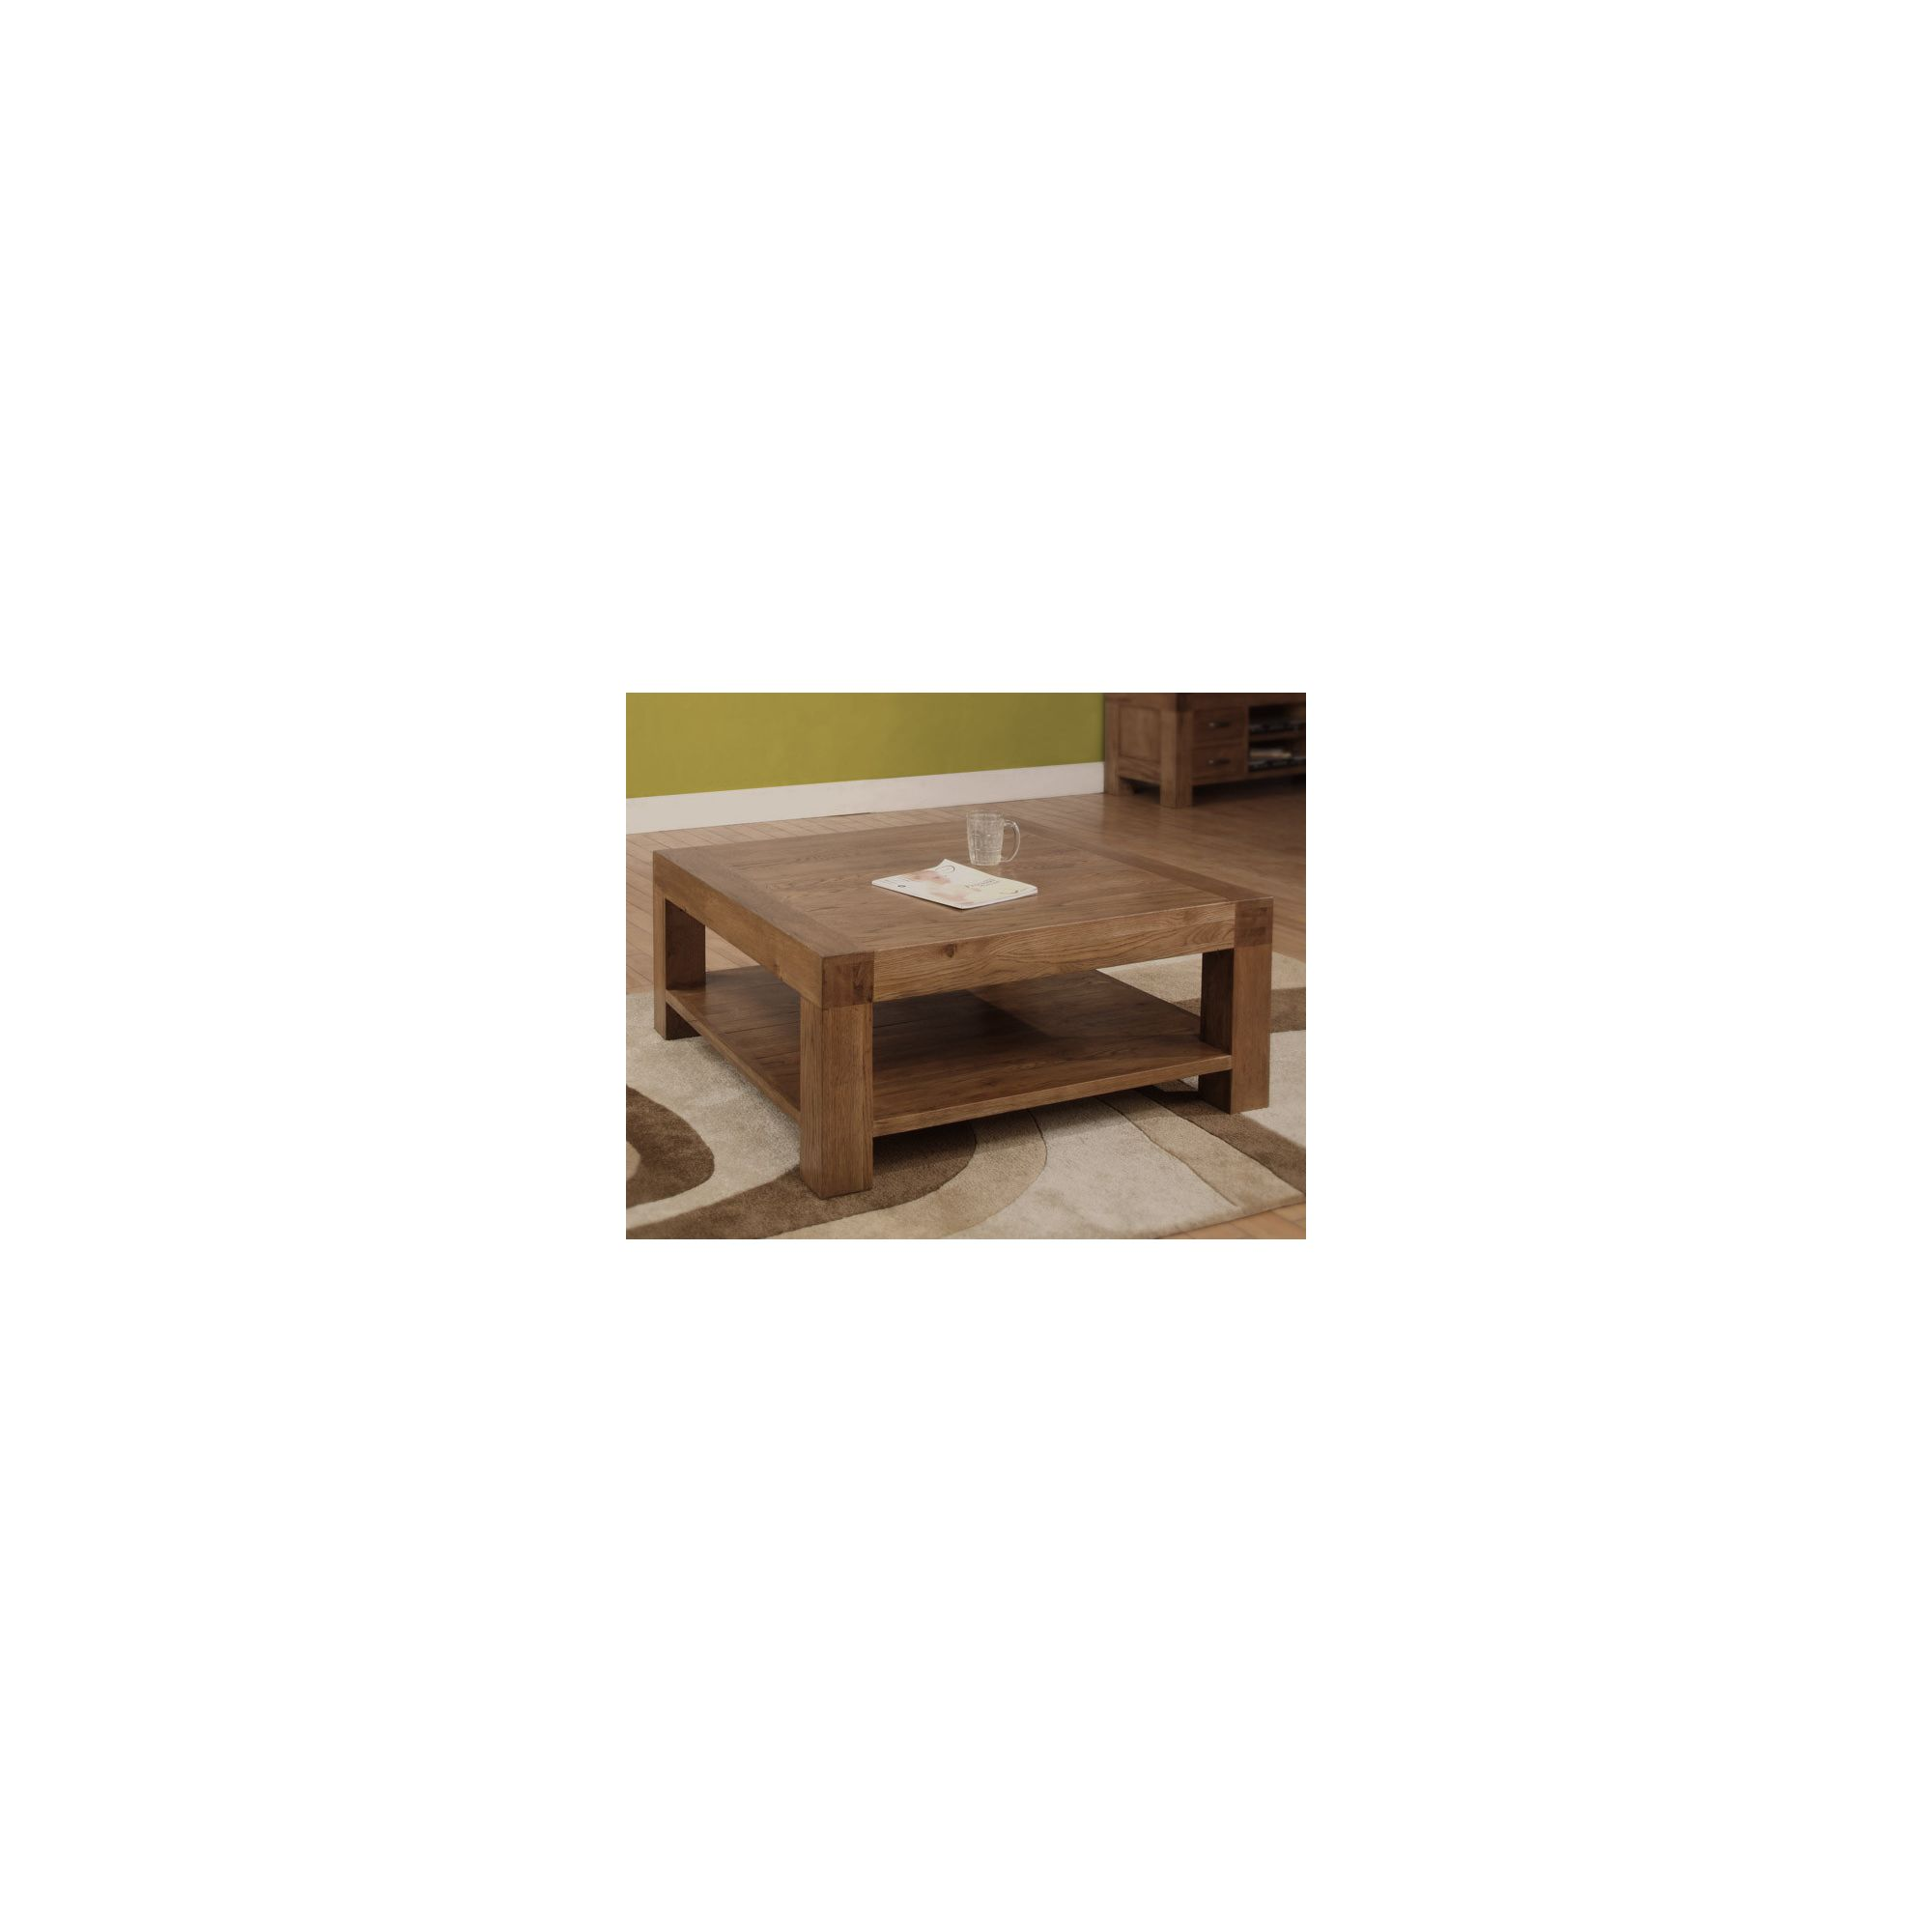 Hawkshead Santana Low Coffee Table in Rich Patina at Tescos Direct